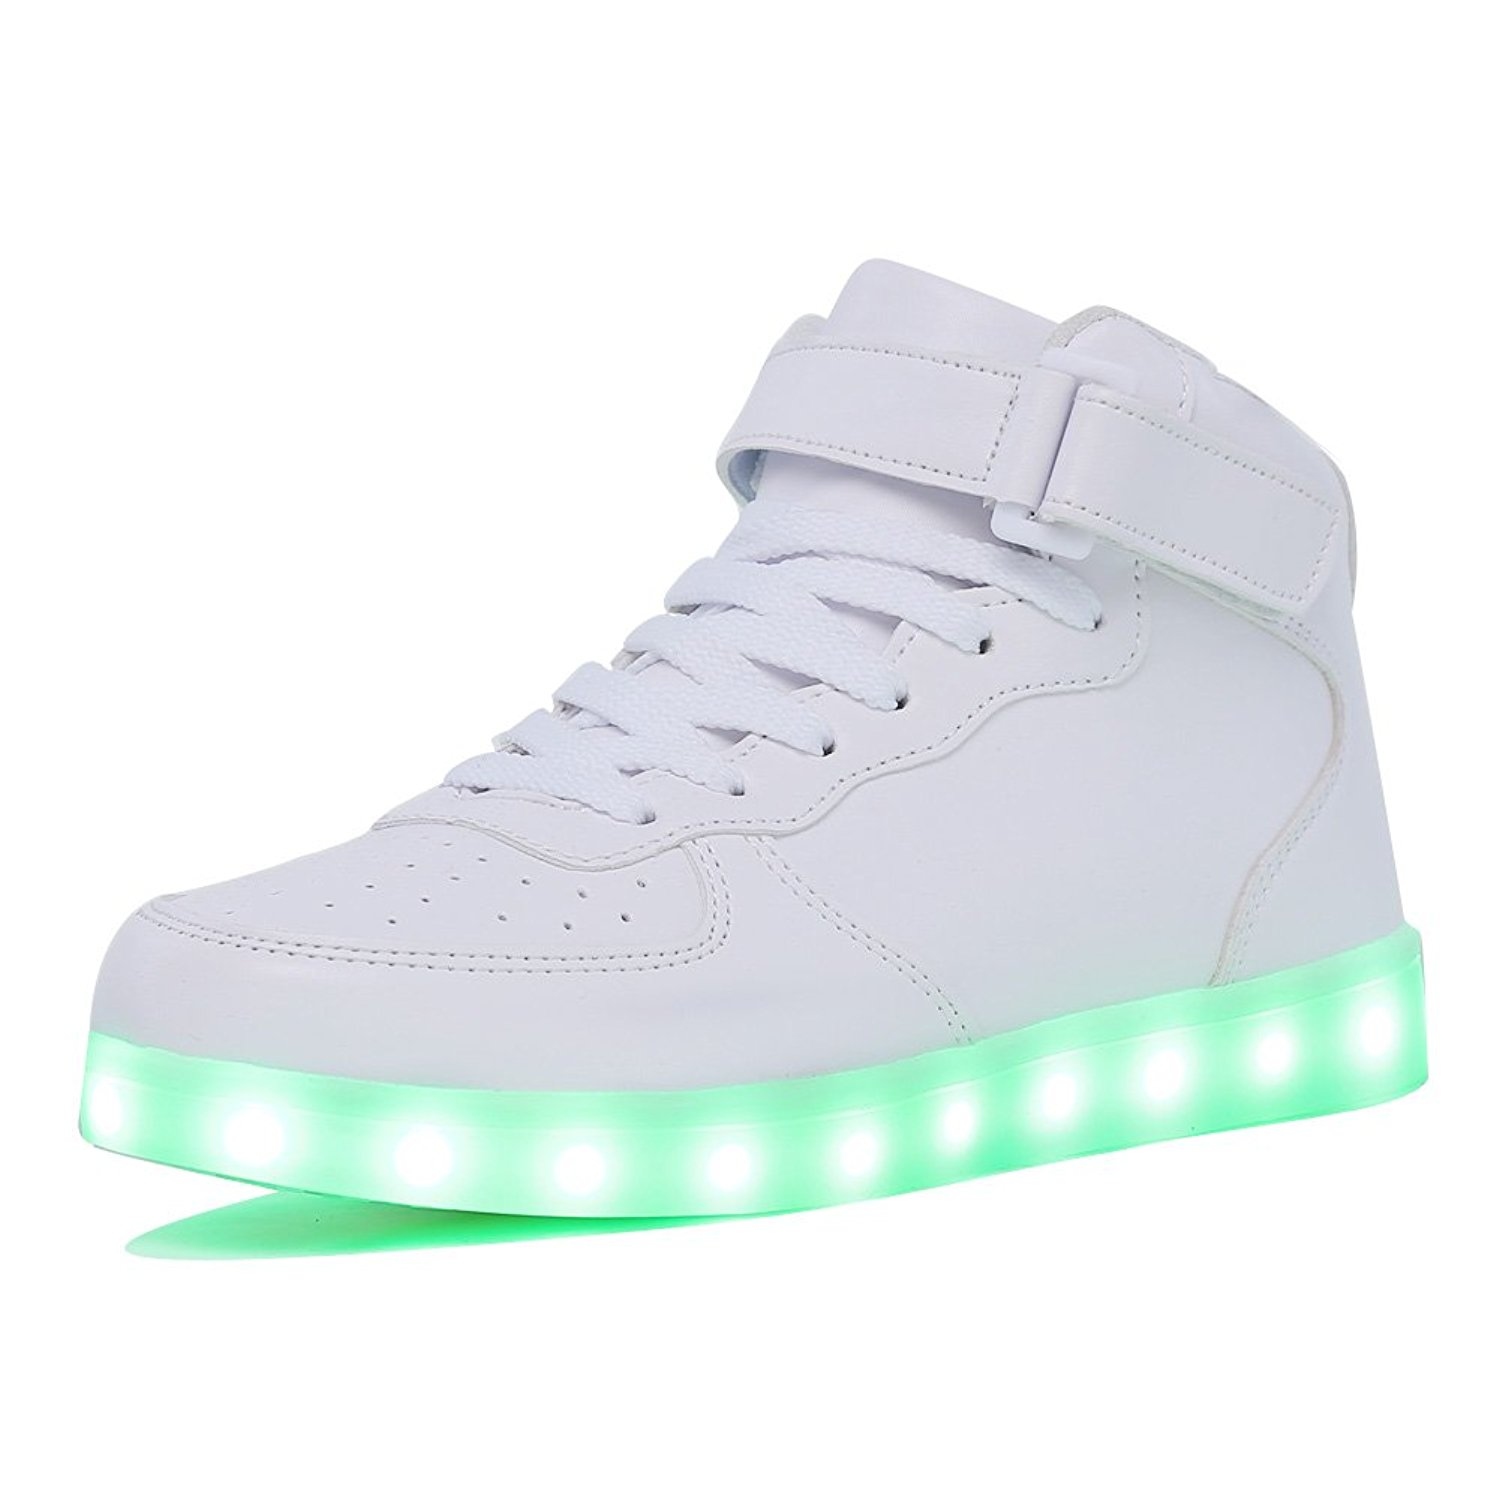 sports shoes 33b29 f3fce KRIATIV Adult Kids Boy and Girl s High Top LED Light Up Shoes Glowing  Sneakers Luminous Sole Sneakers